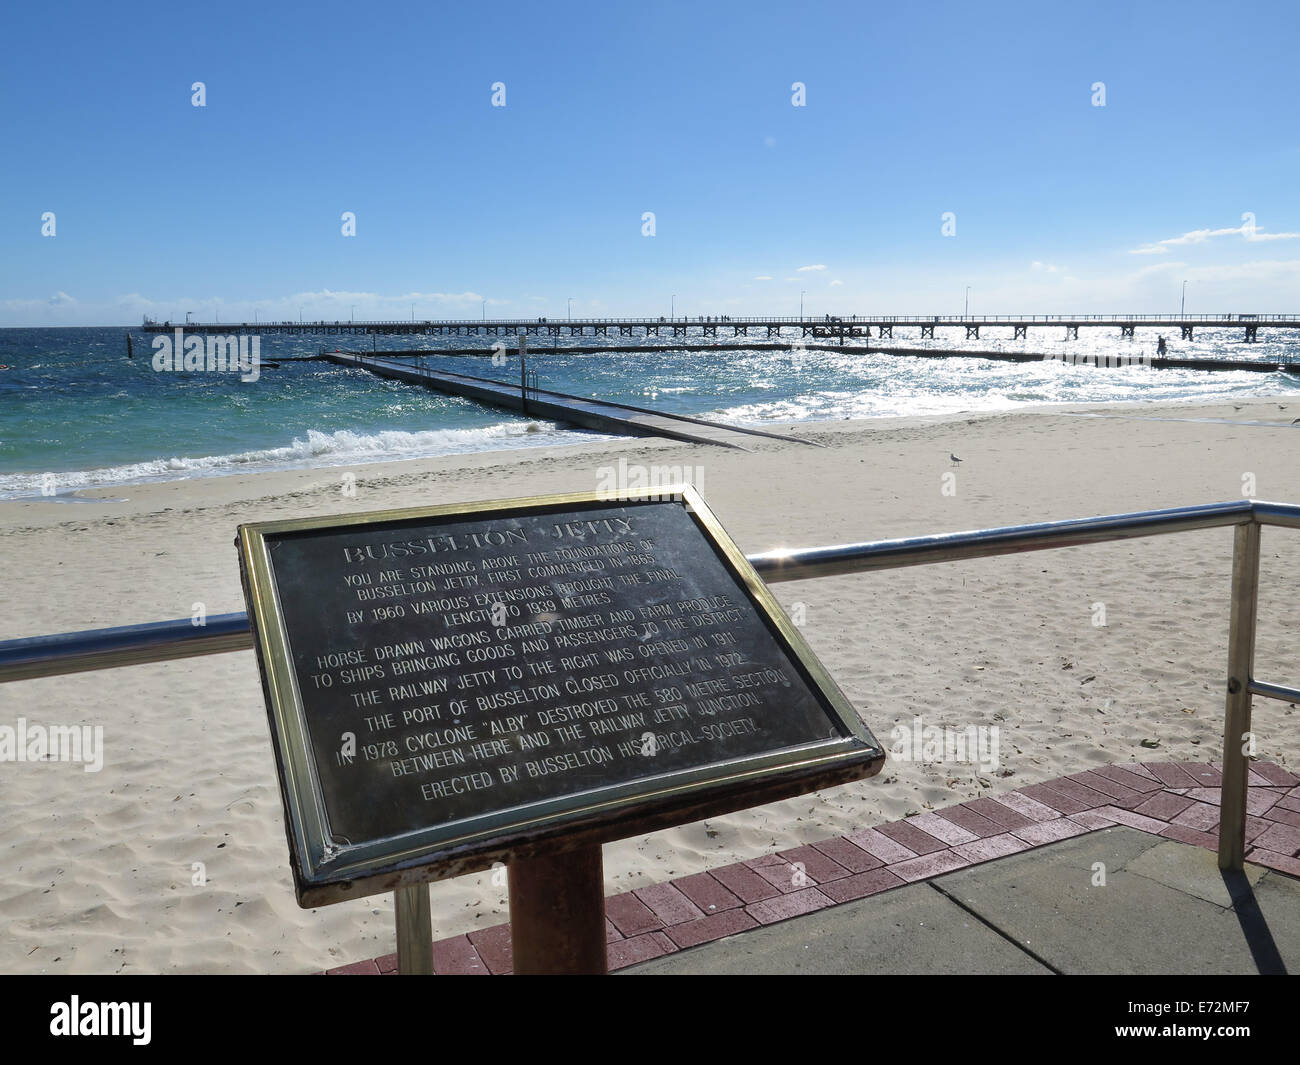 Information plate at Busselton Jetty in Western Australia Stock Photo